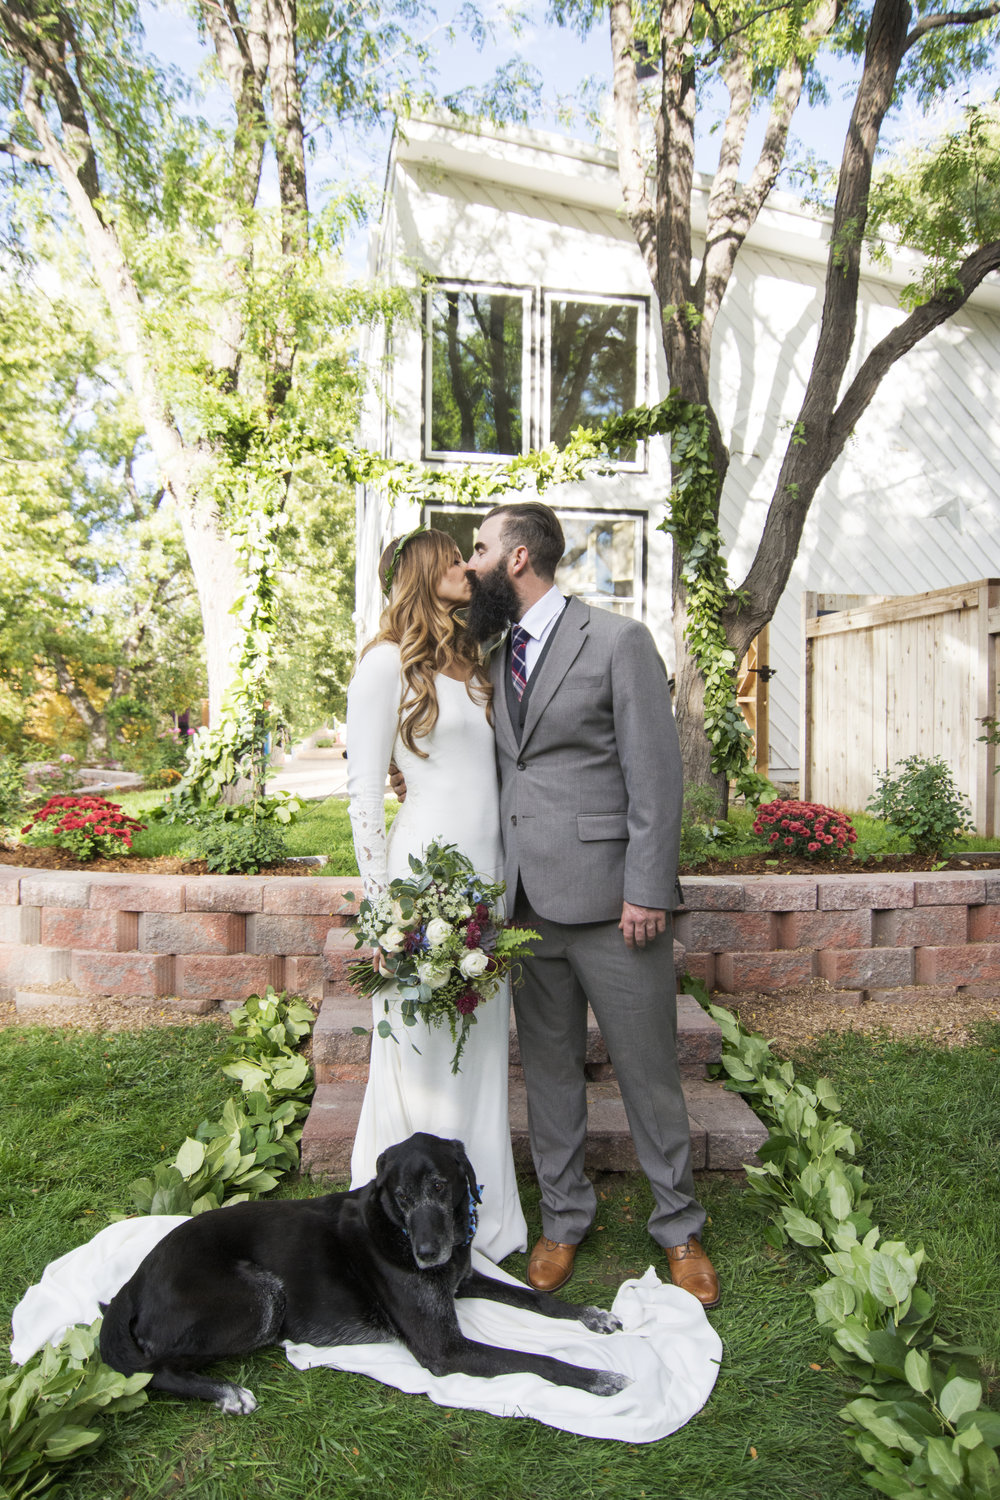 Jayce + John's Denver Backyard Wedding